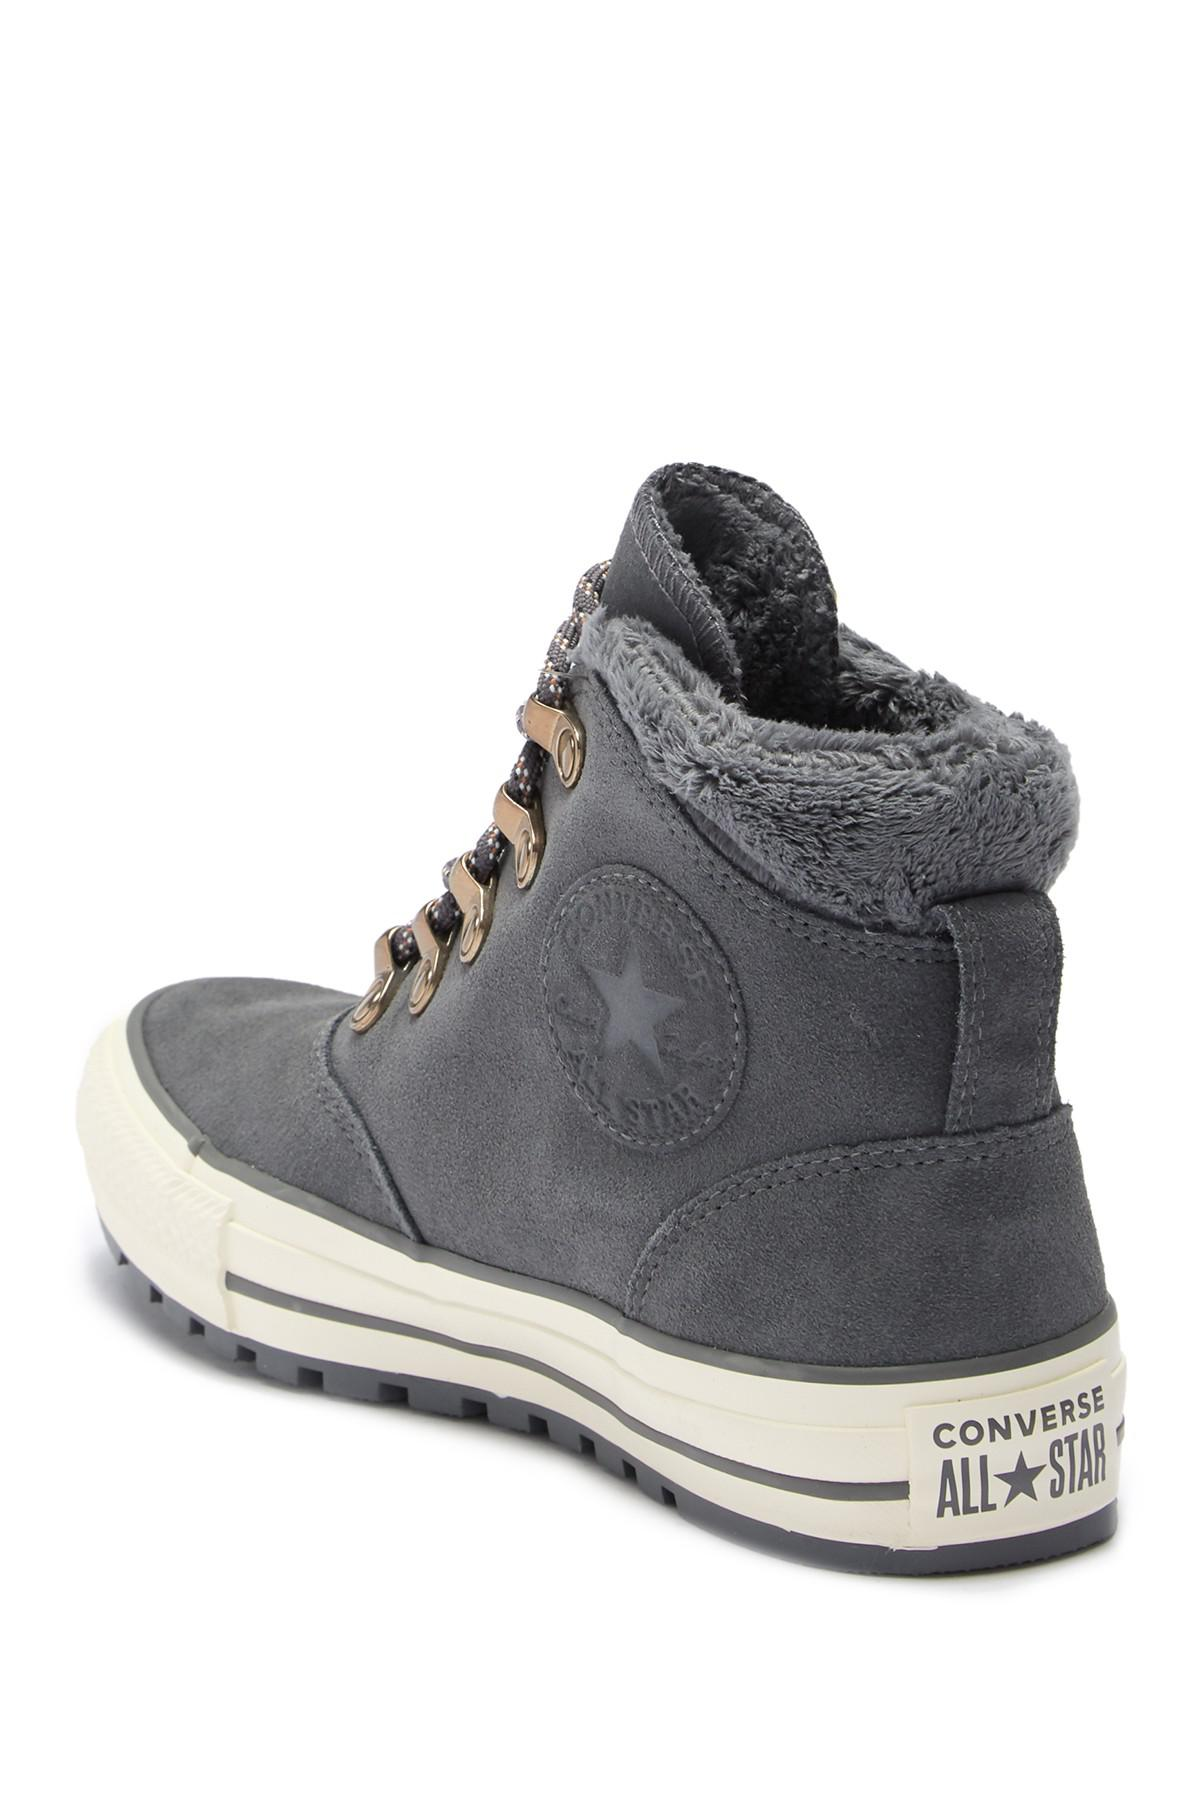 25964fc83a4 Converse - Multicolor Chuck Taylor All Star Ember Faux Fur Lined Boot (women)  -. View fullscreen